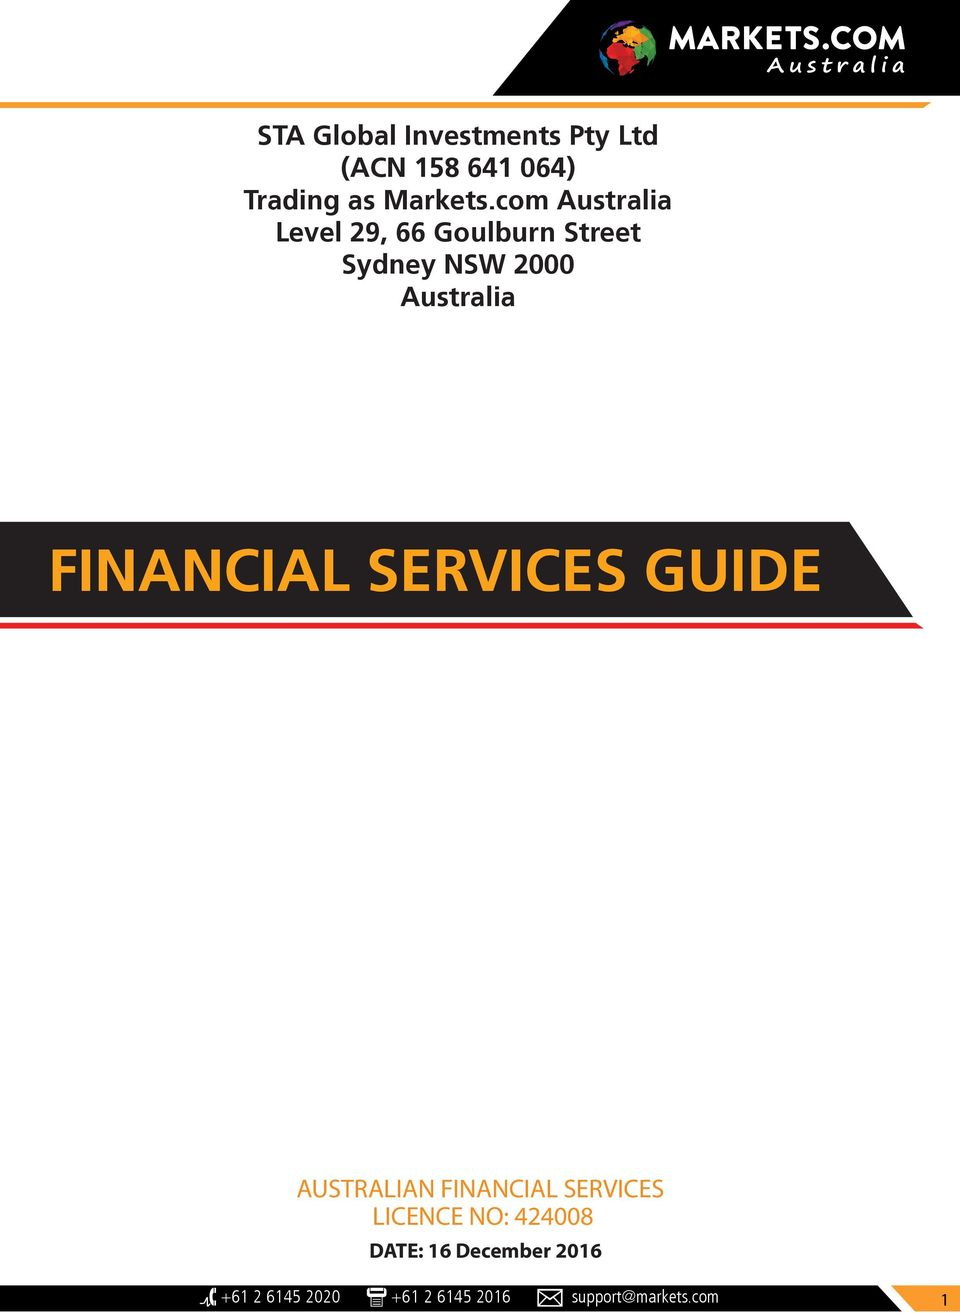 FINANCIAL SERVICES GUIDE AUSTRALIAN FINANCIAL SERVICES LICENCE NO: